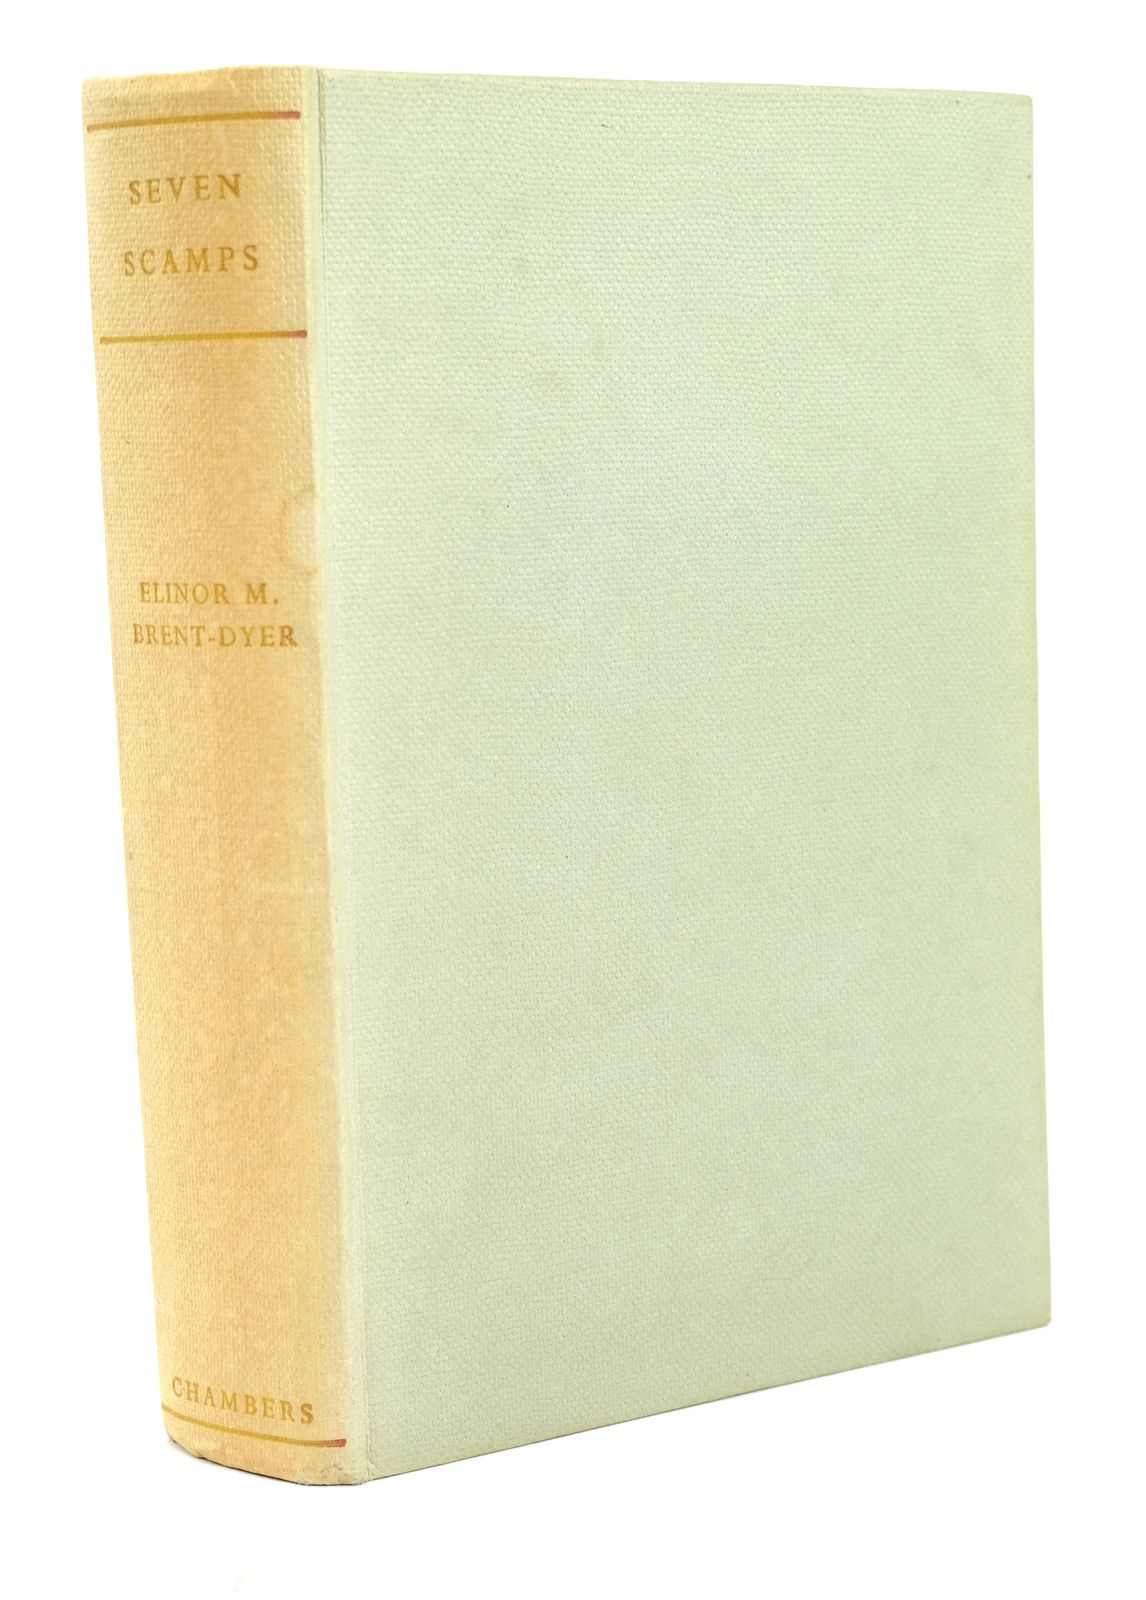 Photo of SEVEN SCAMPS written by Brent-Dyer, Elinor M. published by W. & R. Chambers Limited (STOCK CODE: 1319300)  for sale by Stella & Rose's Books